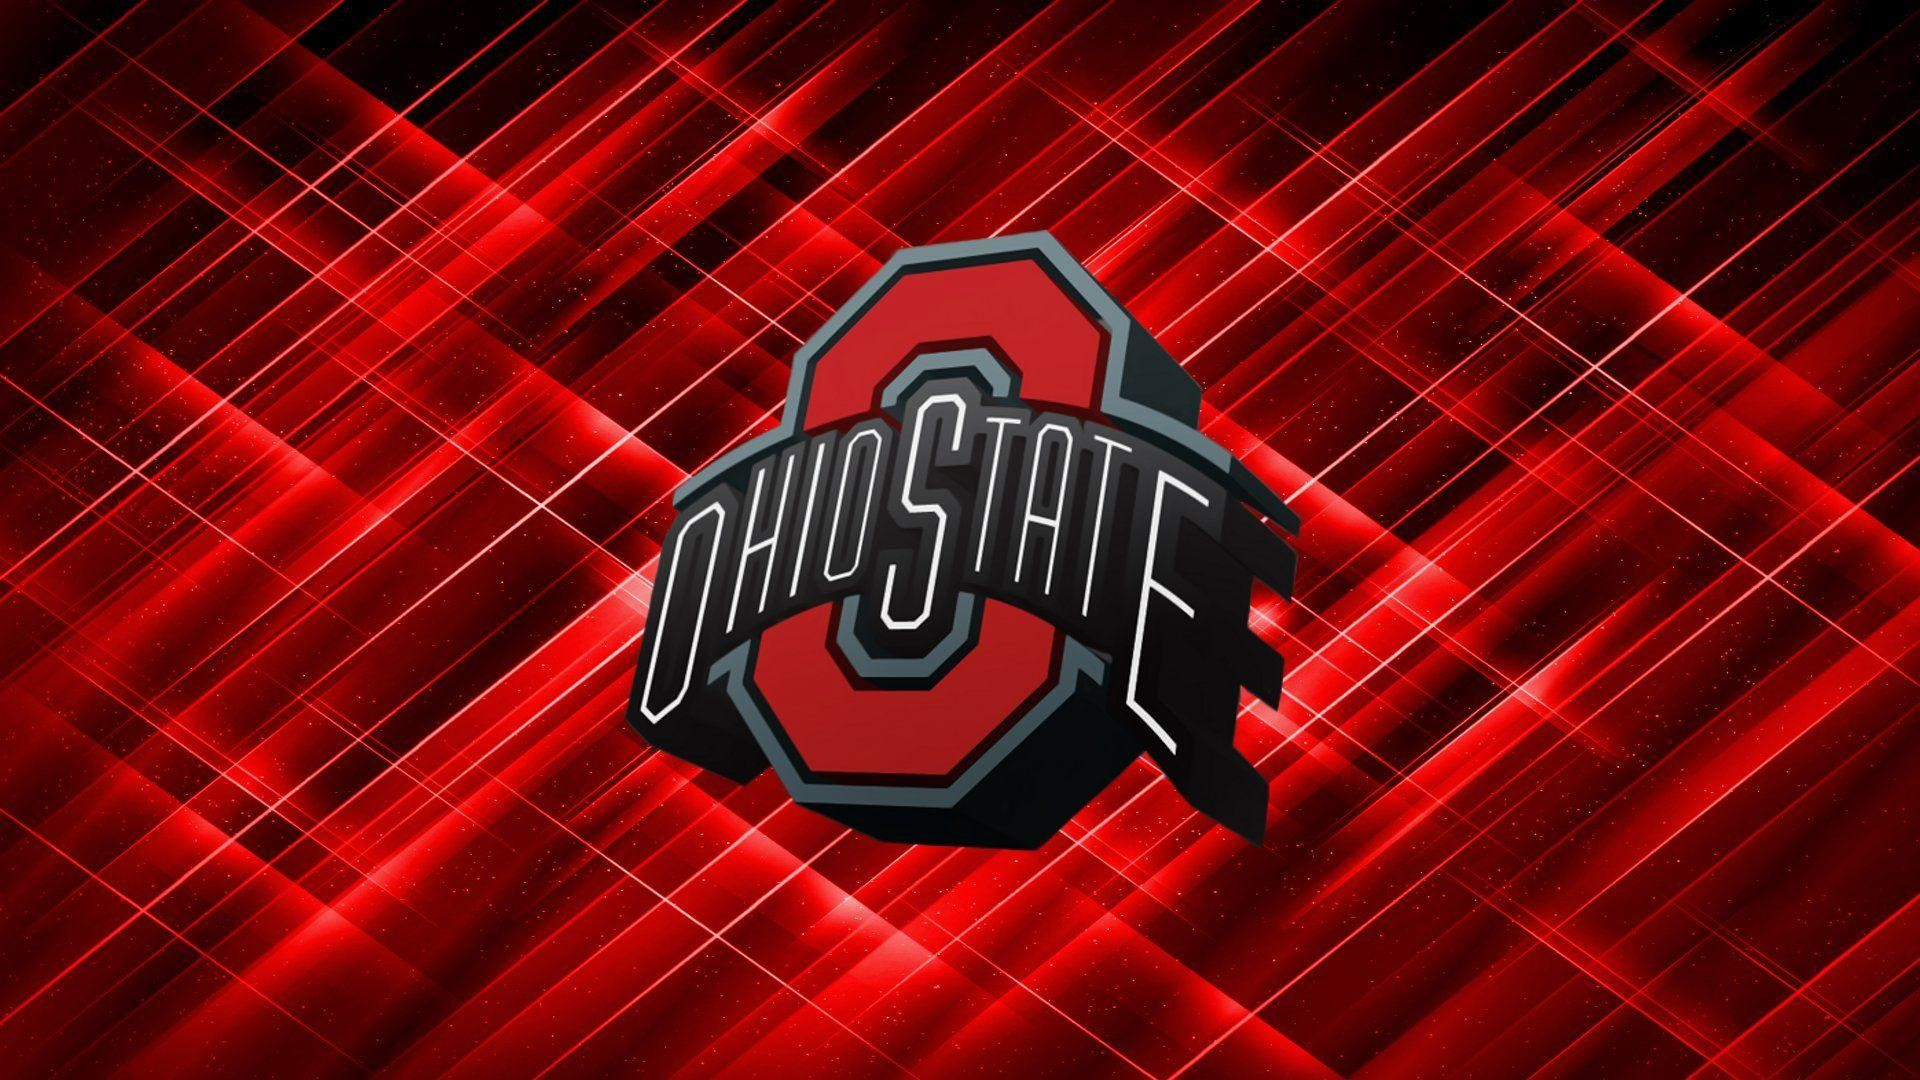 Ohio-State-Buckeyes-Football-Backgrounds-Download-wallpaper-wp2008627